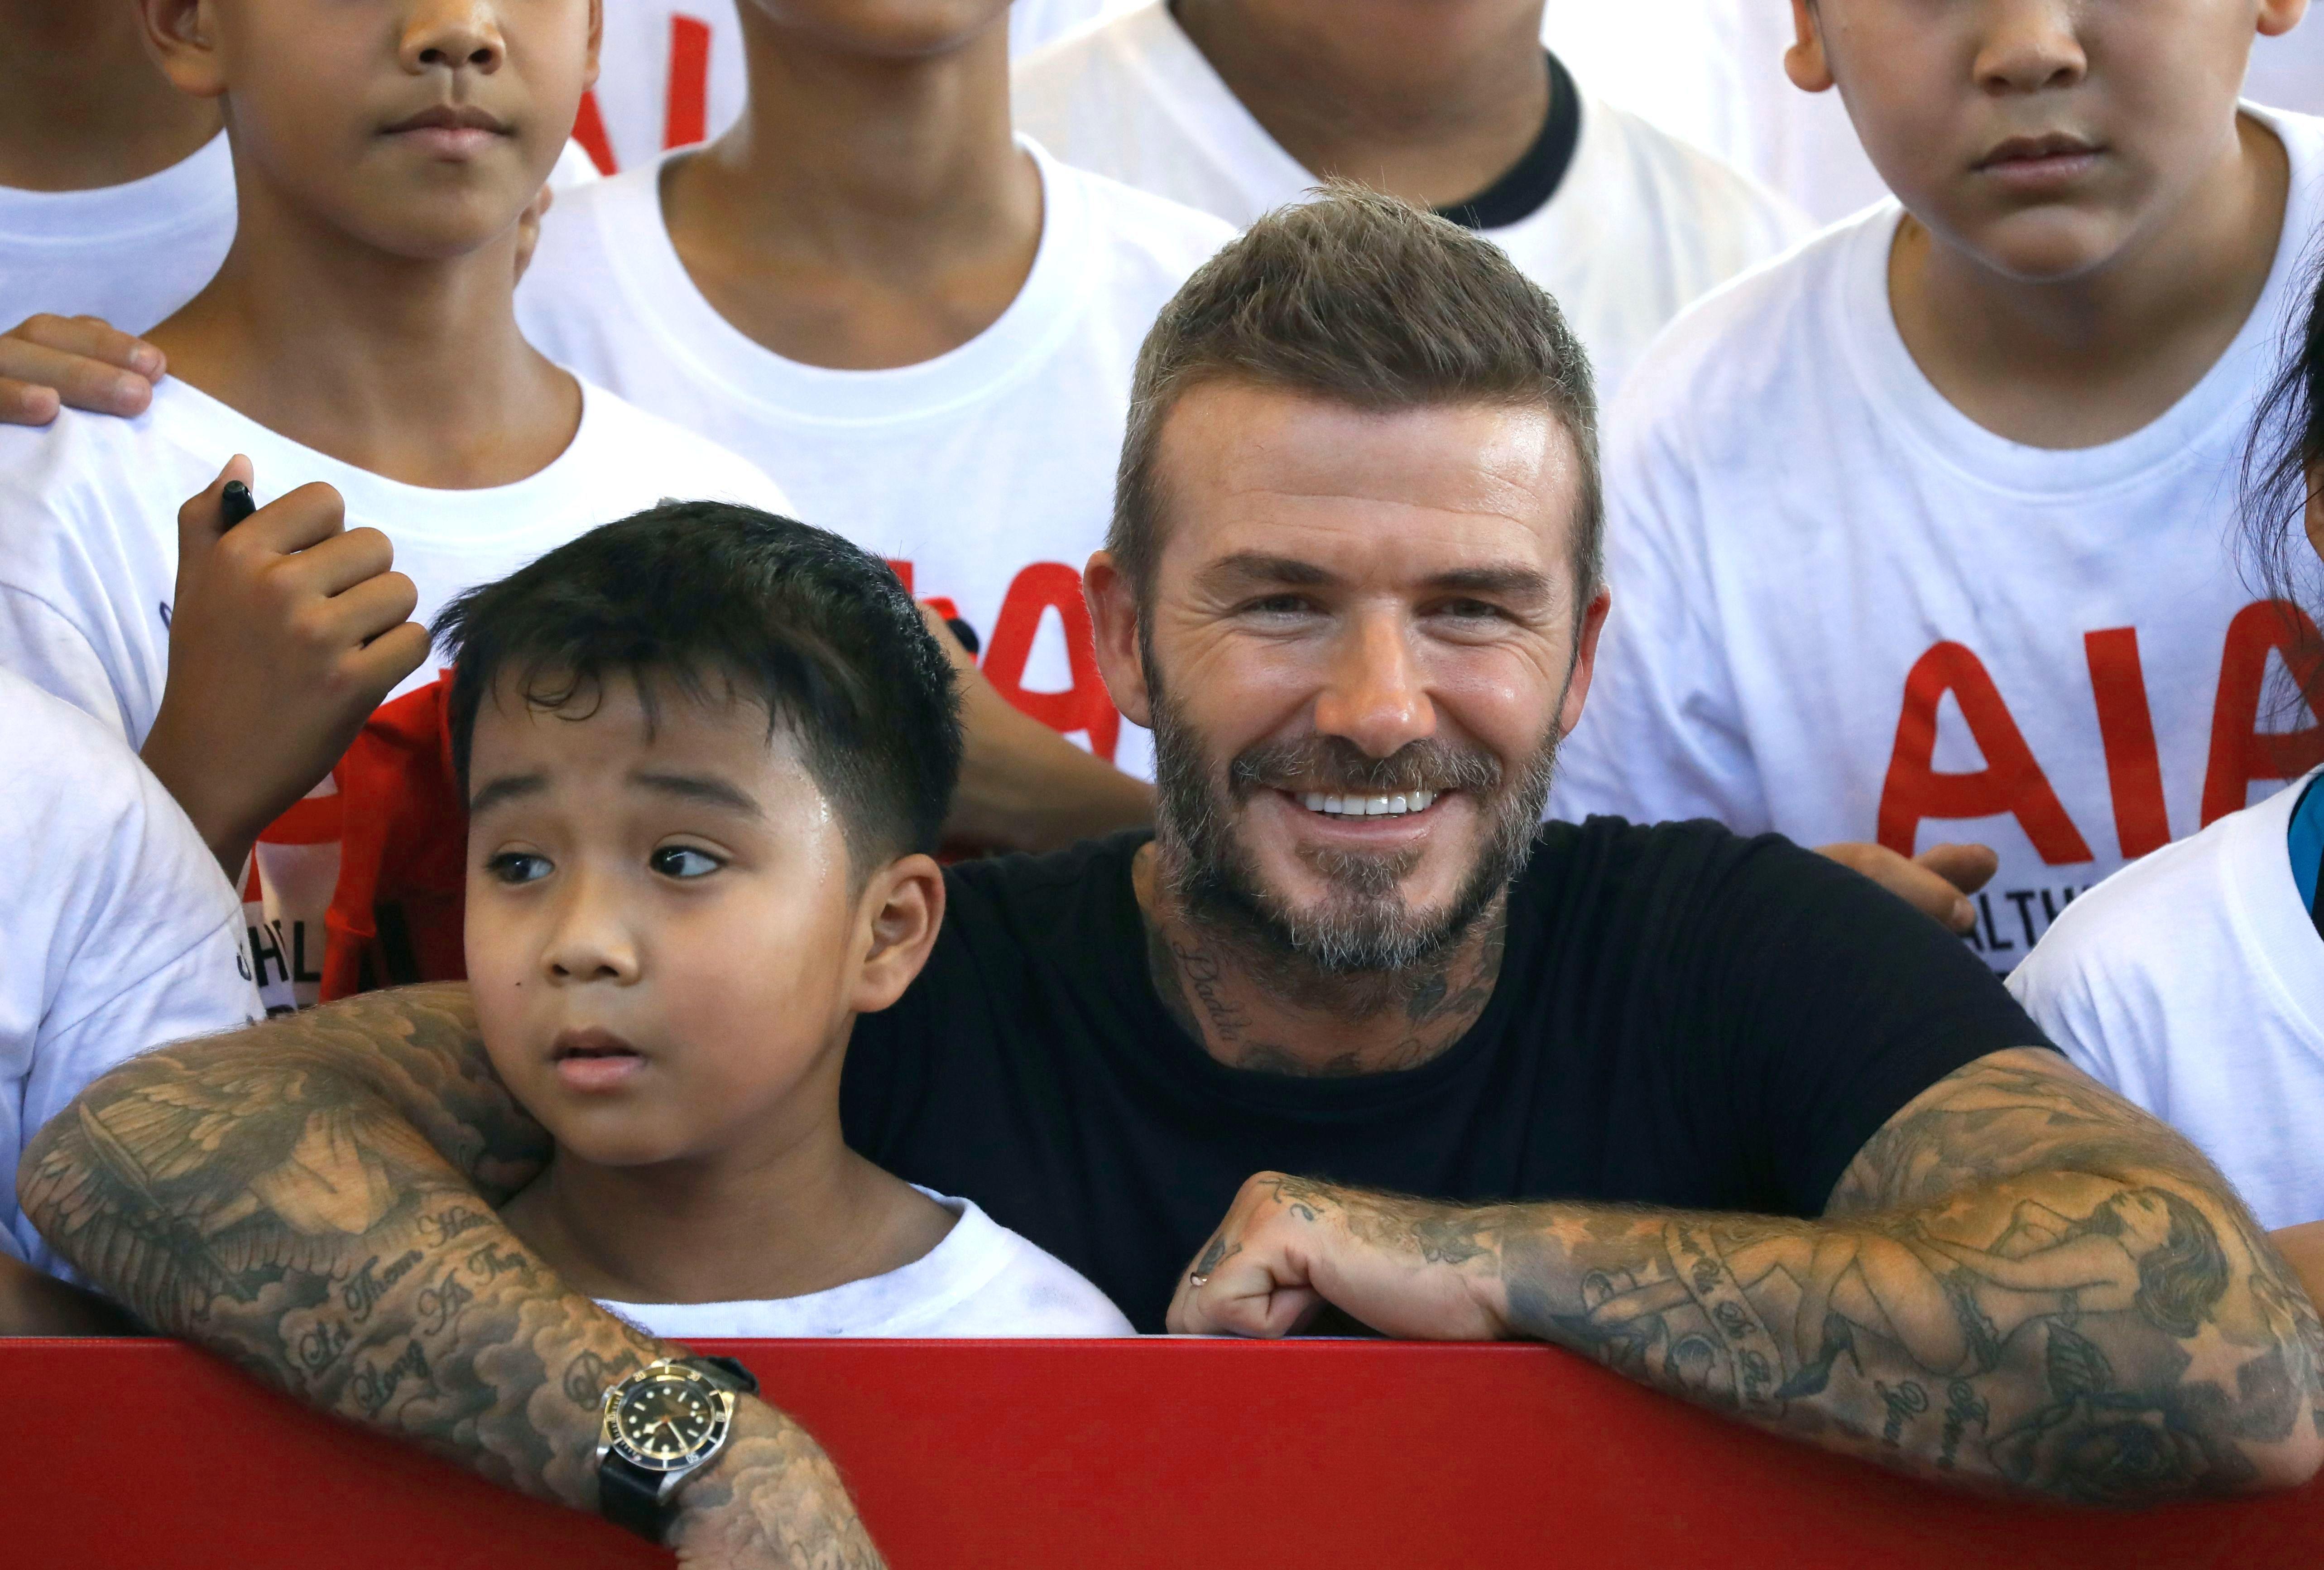 David Beckham poses for a group photo with Thai youths during AIA's Football Clinic for Youth event at SCG Muangthong United soccer club in Nonthaburi province, on the outskirts of Bangkok, Thailand, on Nov. 3, 2018.